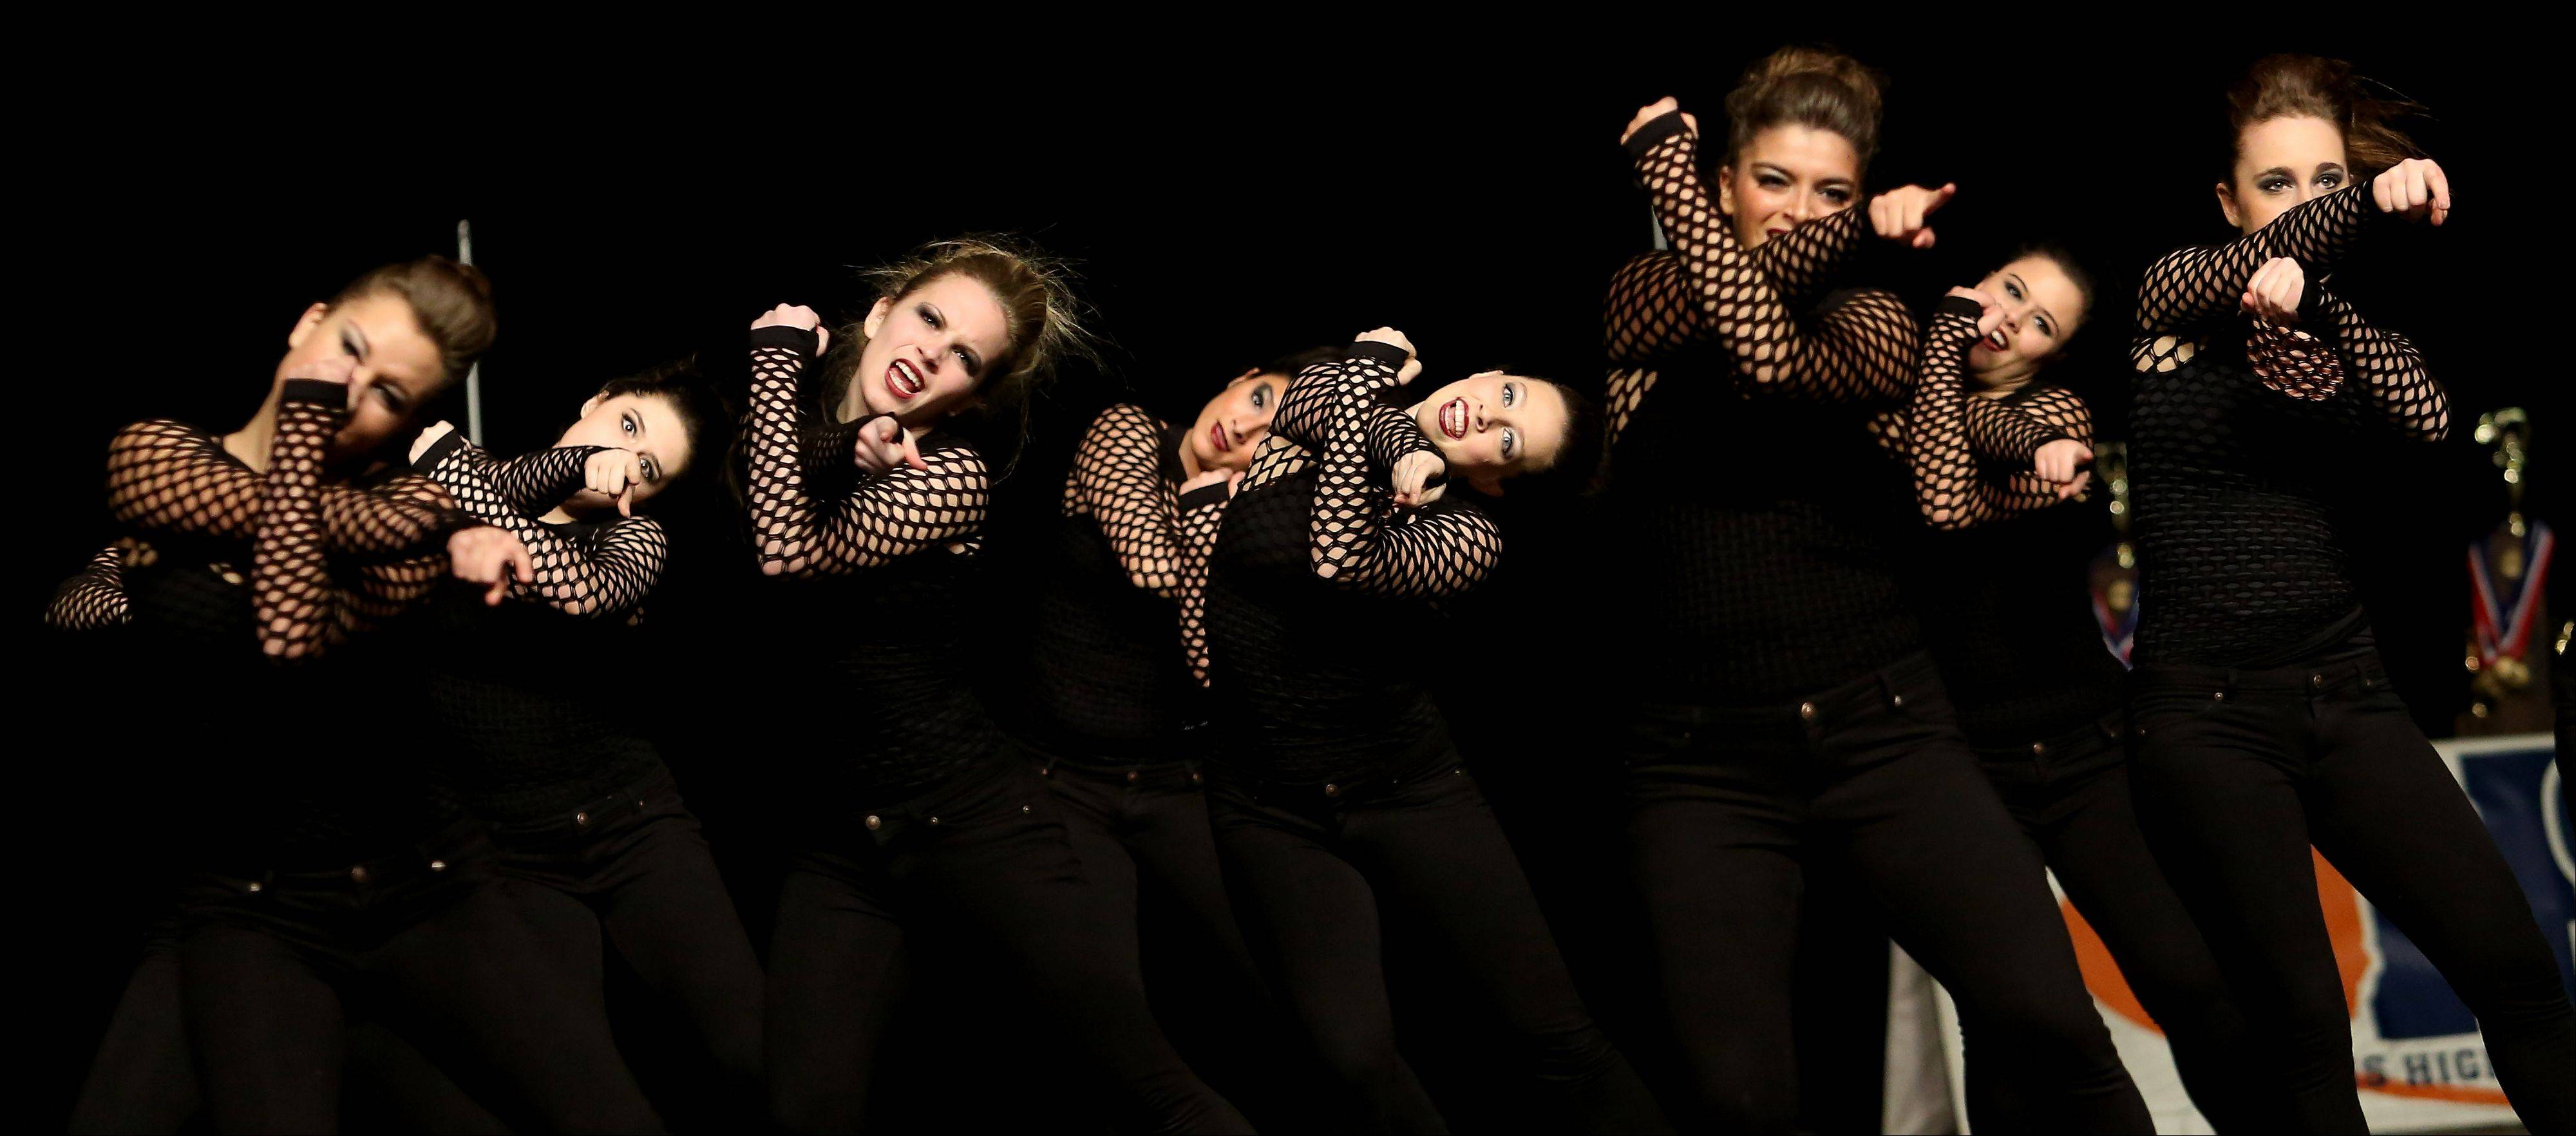 Lake Park High School performs in the 3A division in the Competitive Dance State Preliminaries on Friday in Bloomington.